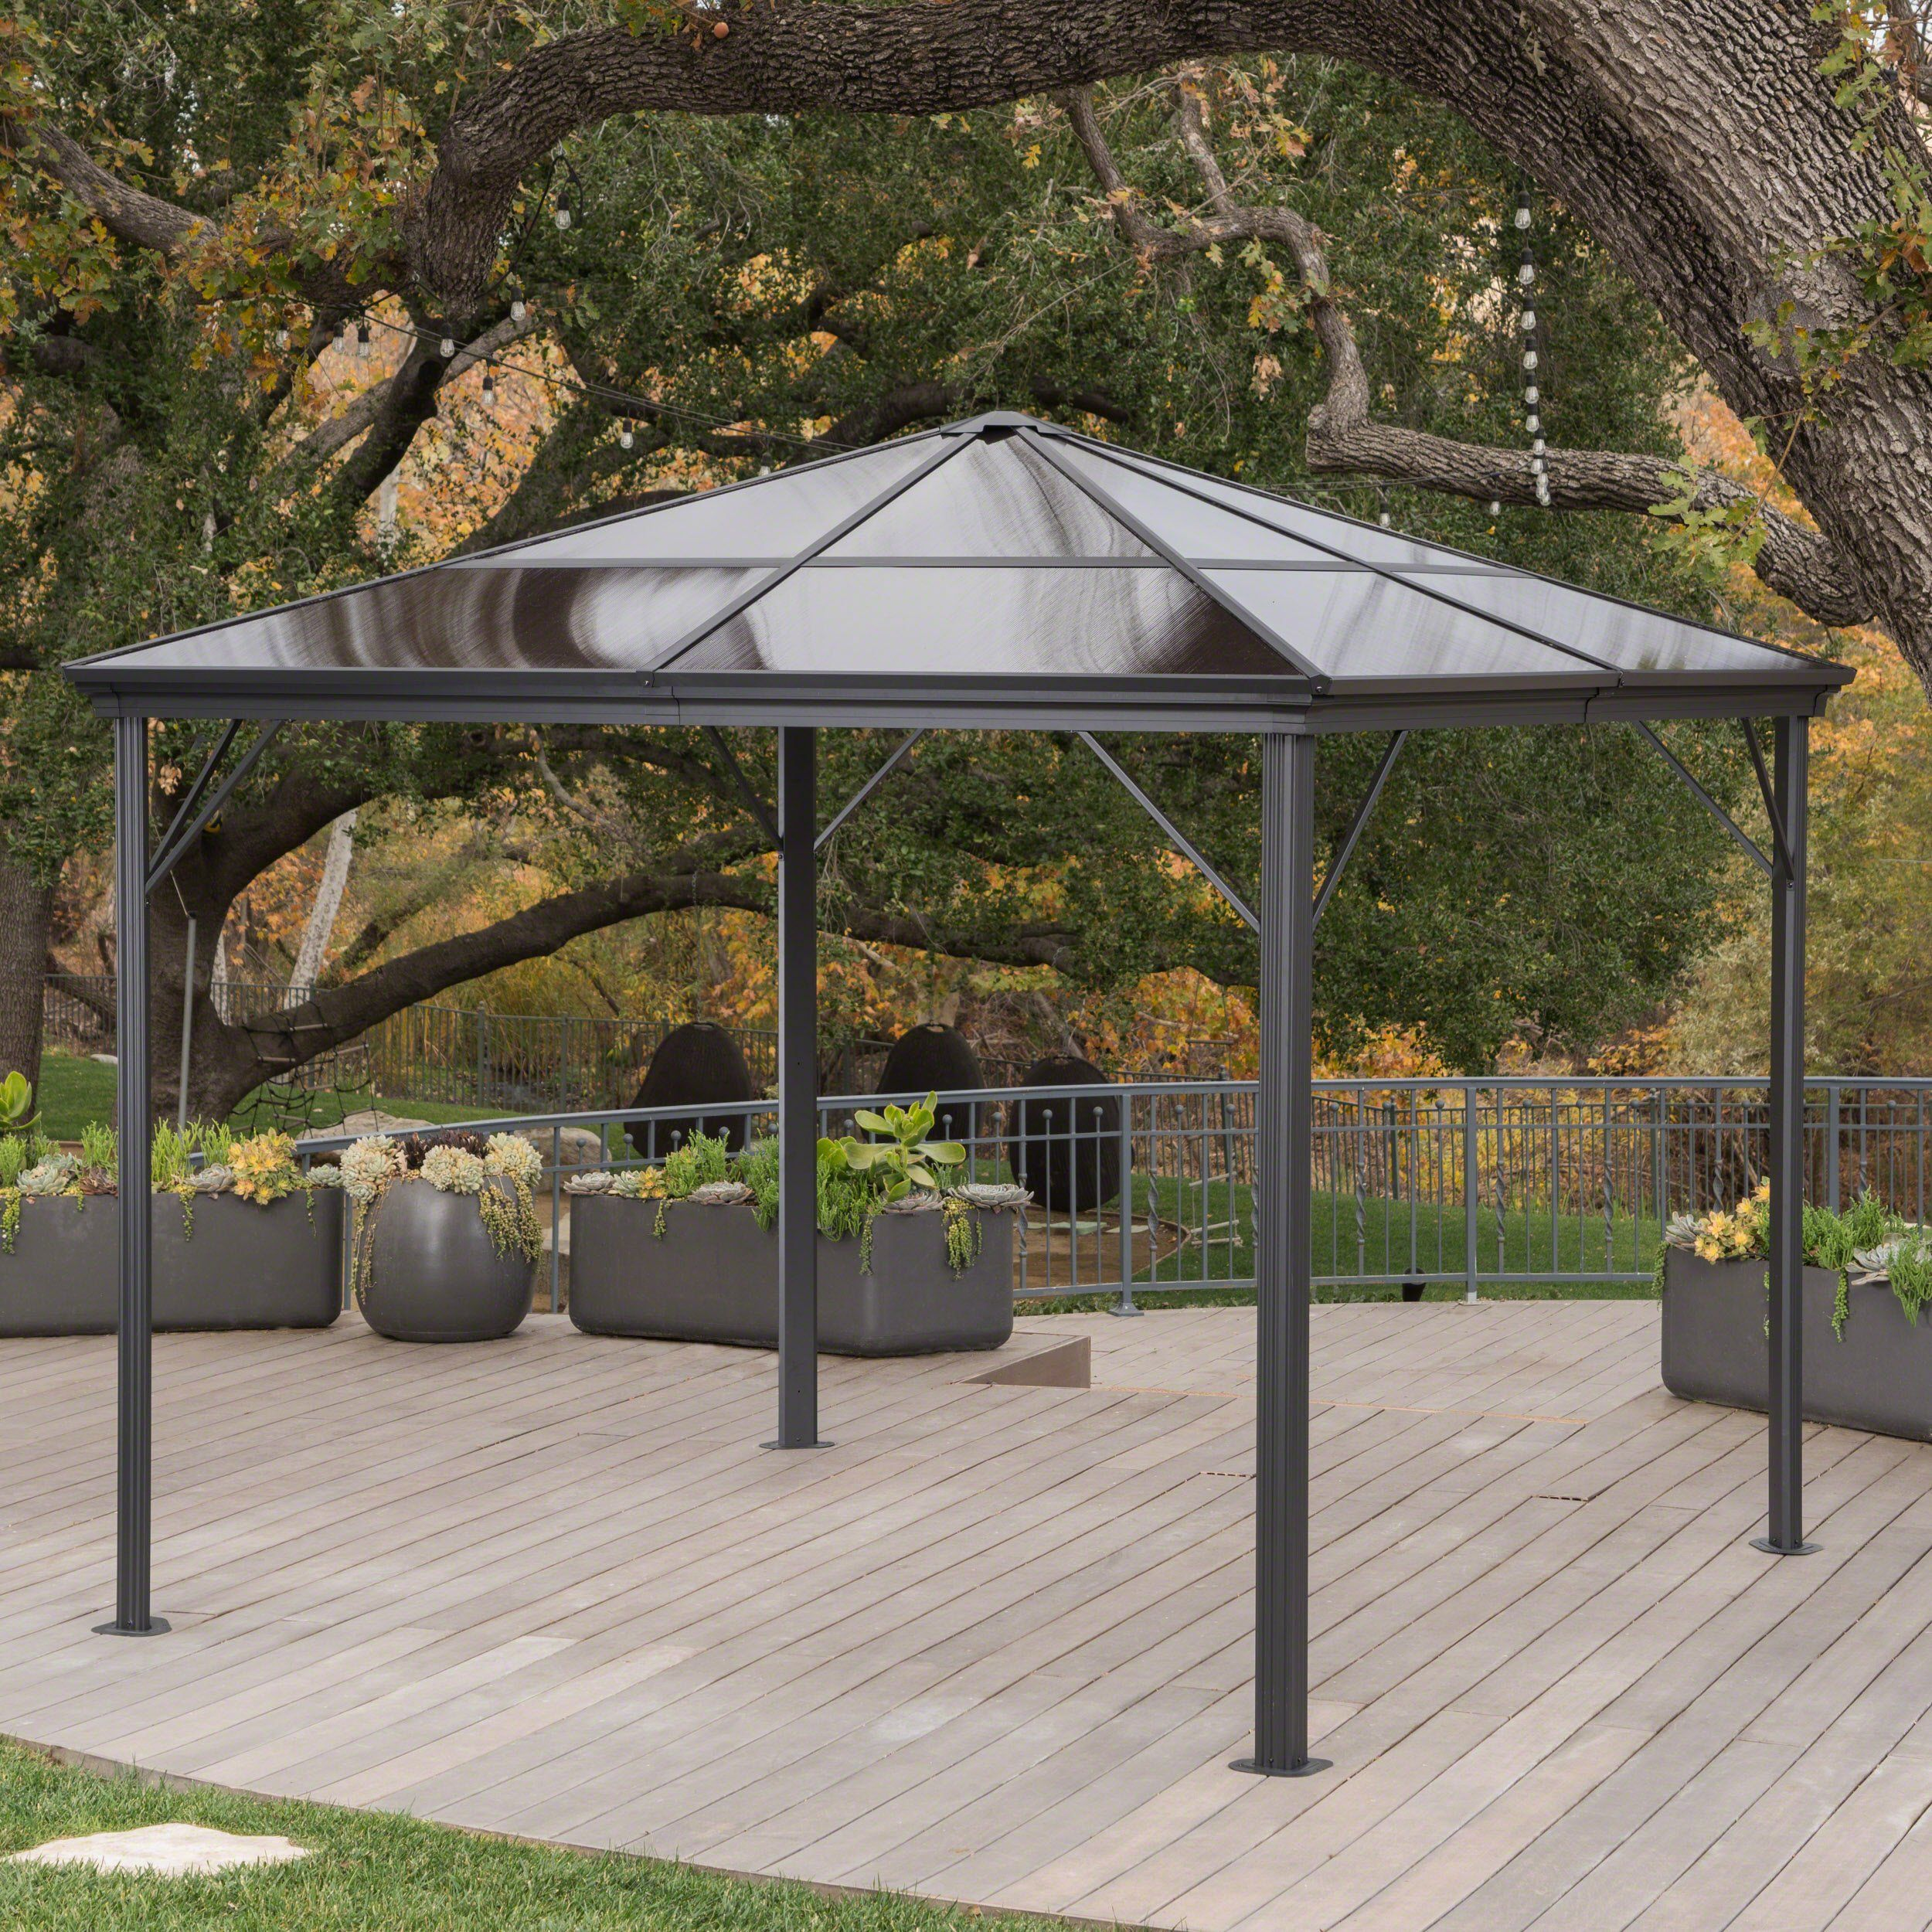 Halley Outdoor 10 X 10 Foot Black Rust Proof Aluminum Framed Hardtop Gazebo No Curtains Patio Patio Gazebo Gazebo